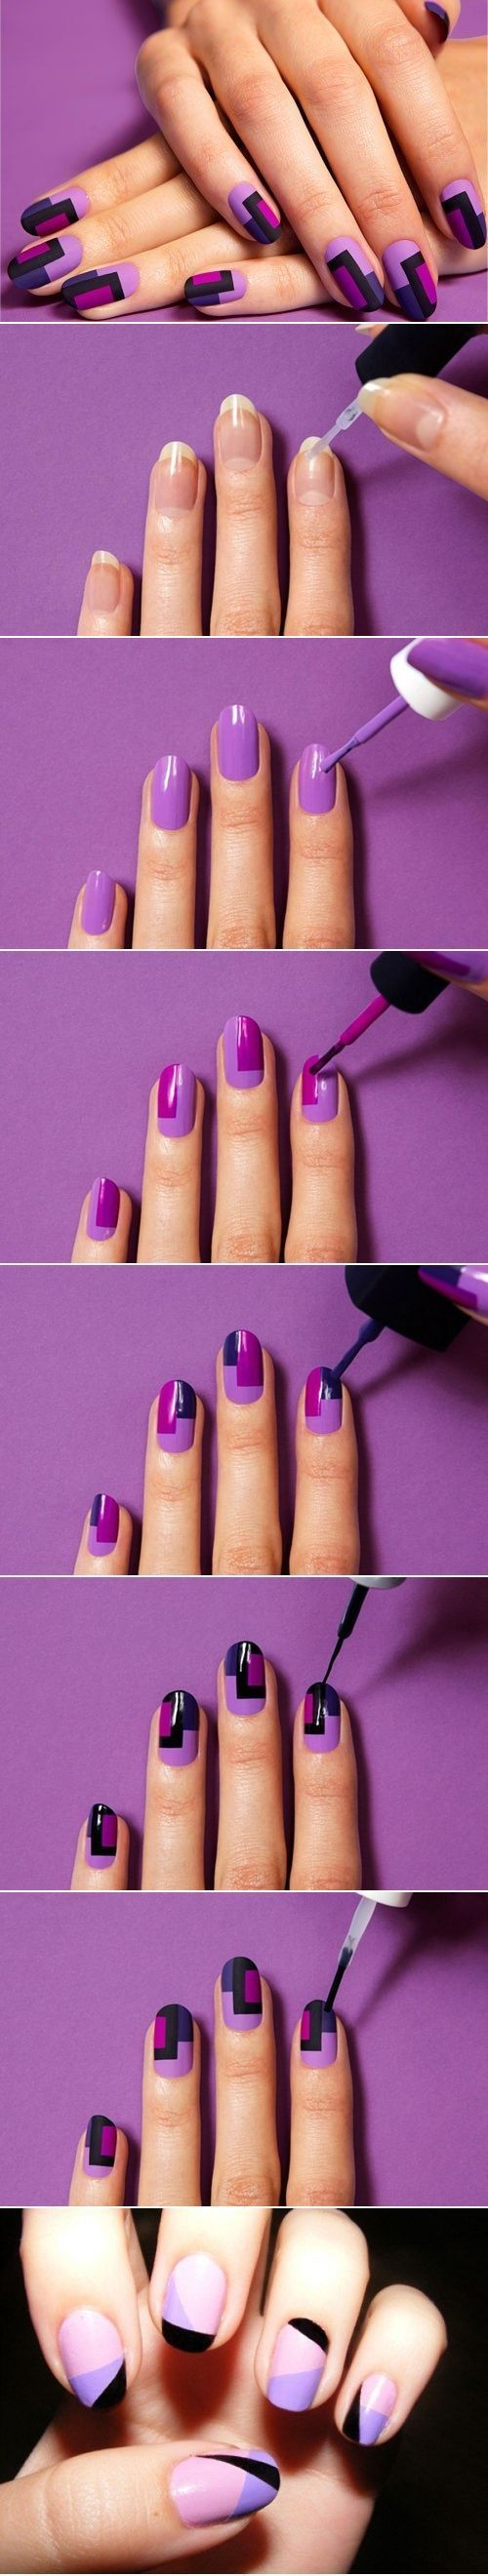 best uñas images on pinterest nail design nail scissors and